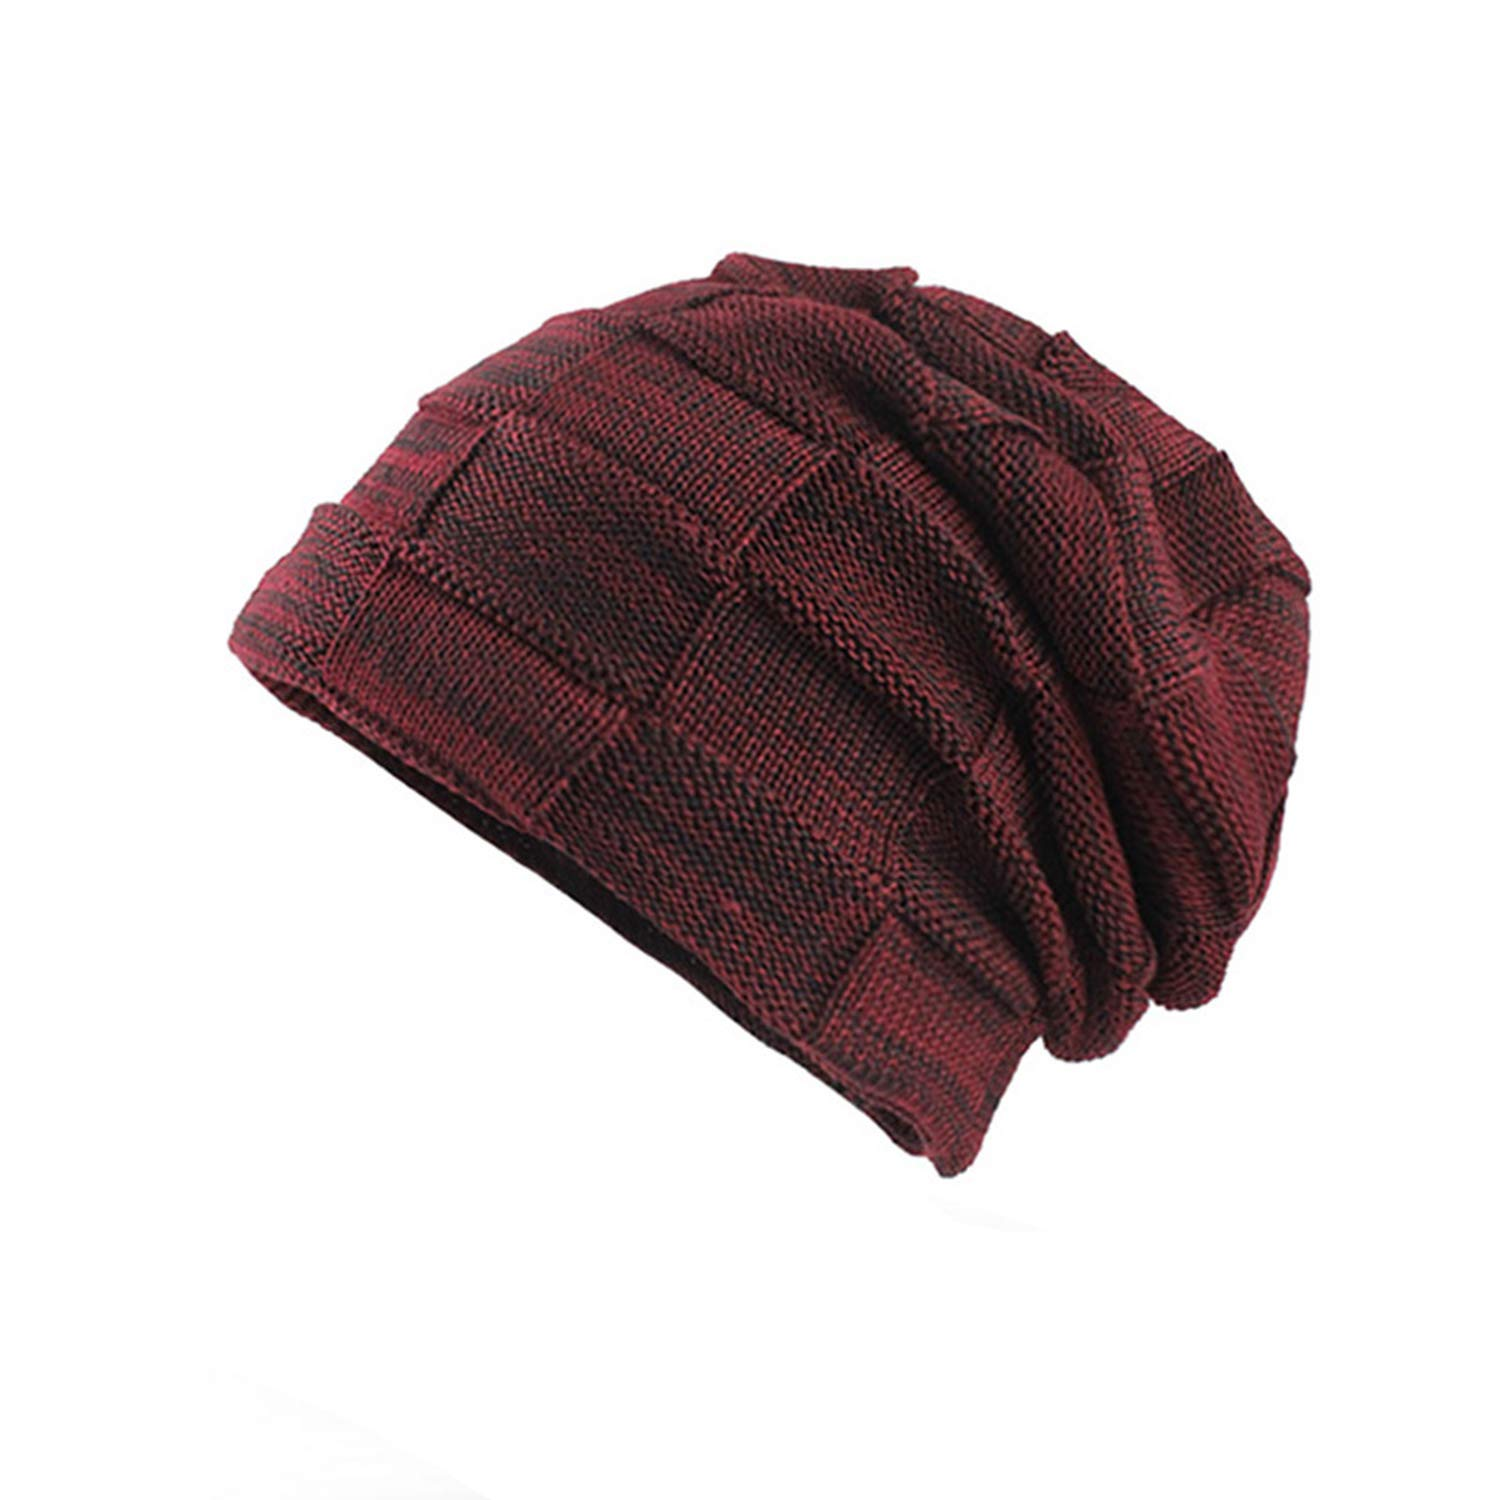 Thick Men Hats Scarf Cap Knitted Wool Hat Beanie Men Caps Lady Neck Beanie Fashion Soft Womens F18030